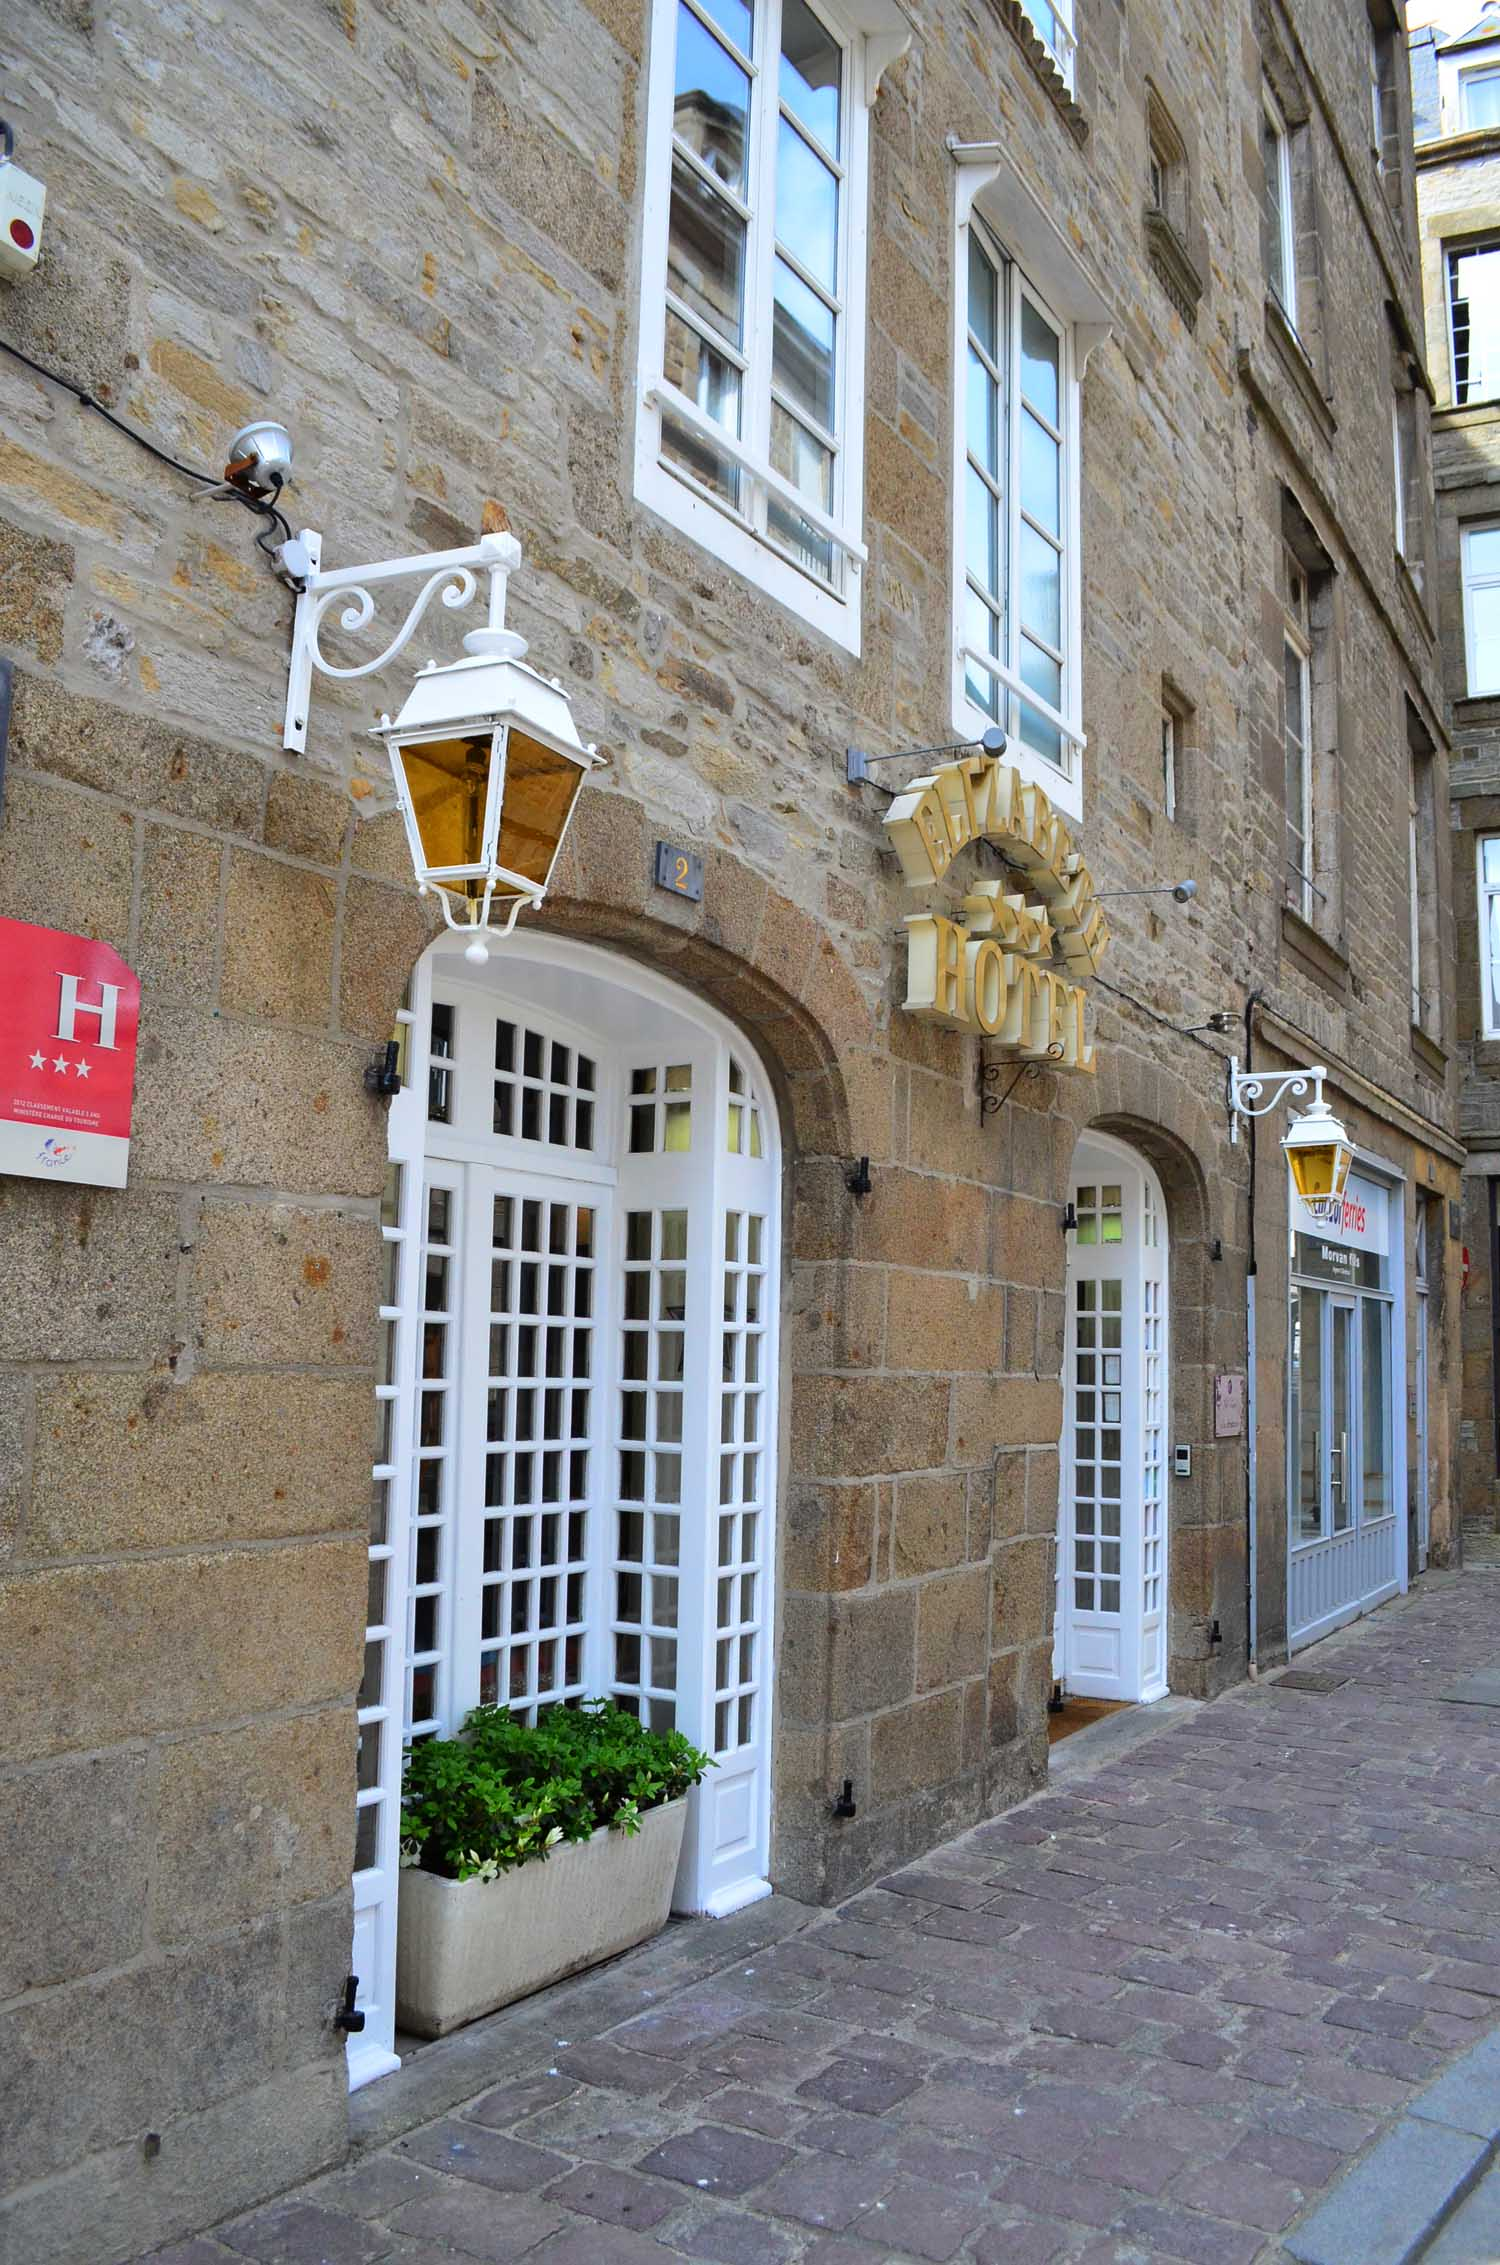 This building, built around 1660, is among the oldest buildings in Saint- Malo. We are located near the port for departures to Jersey, Guersey and England.